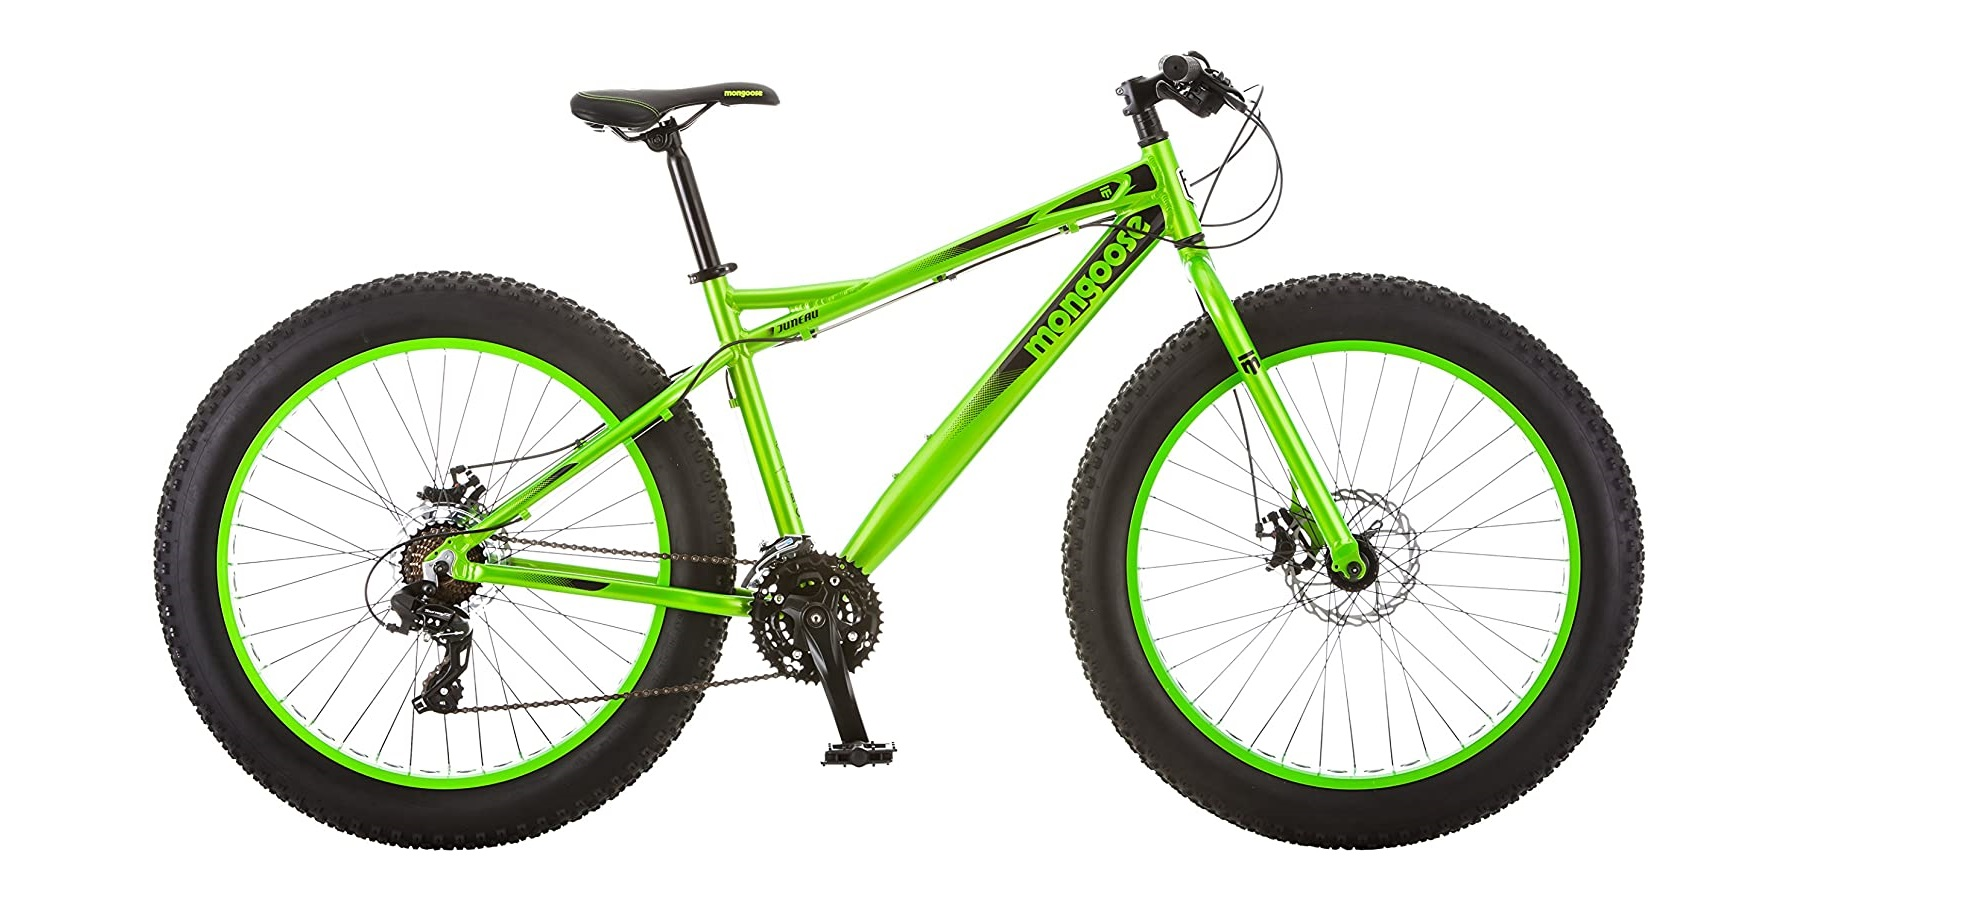 Top 5 Best Fat Bike Under 1000 in 2020 Reviews